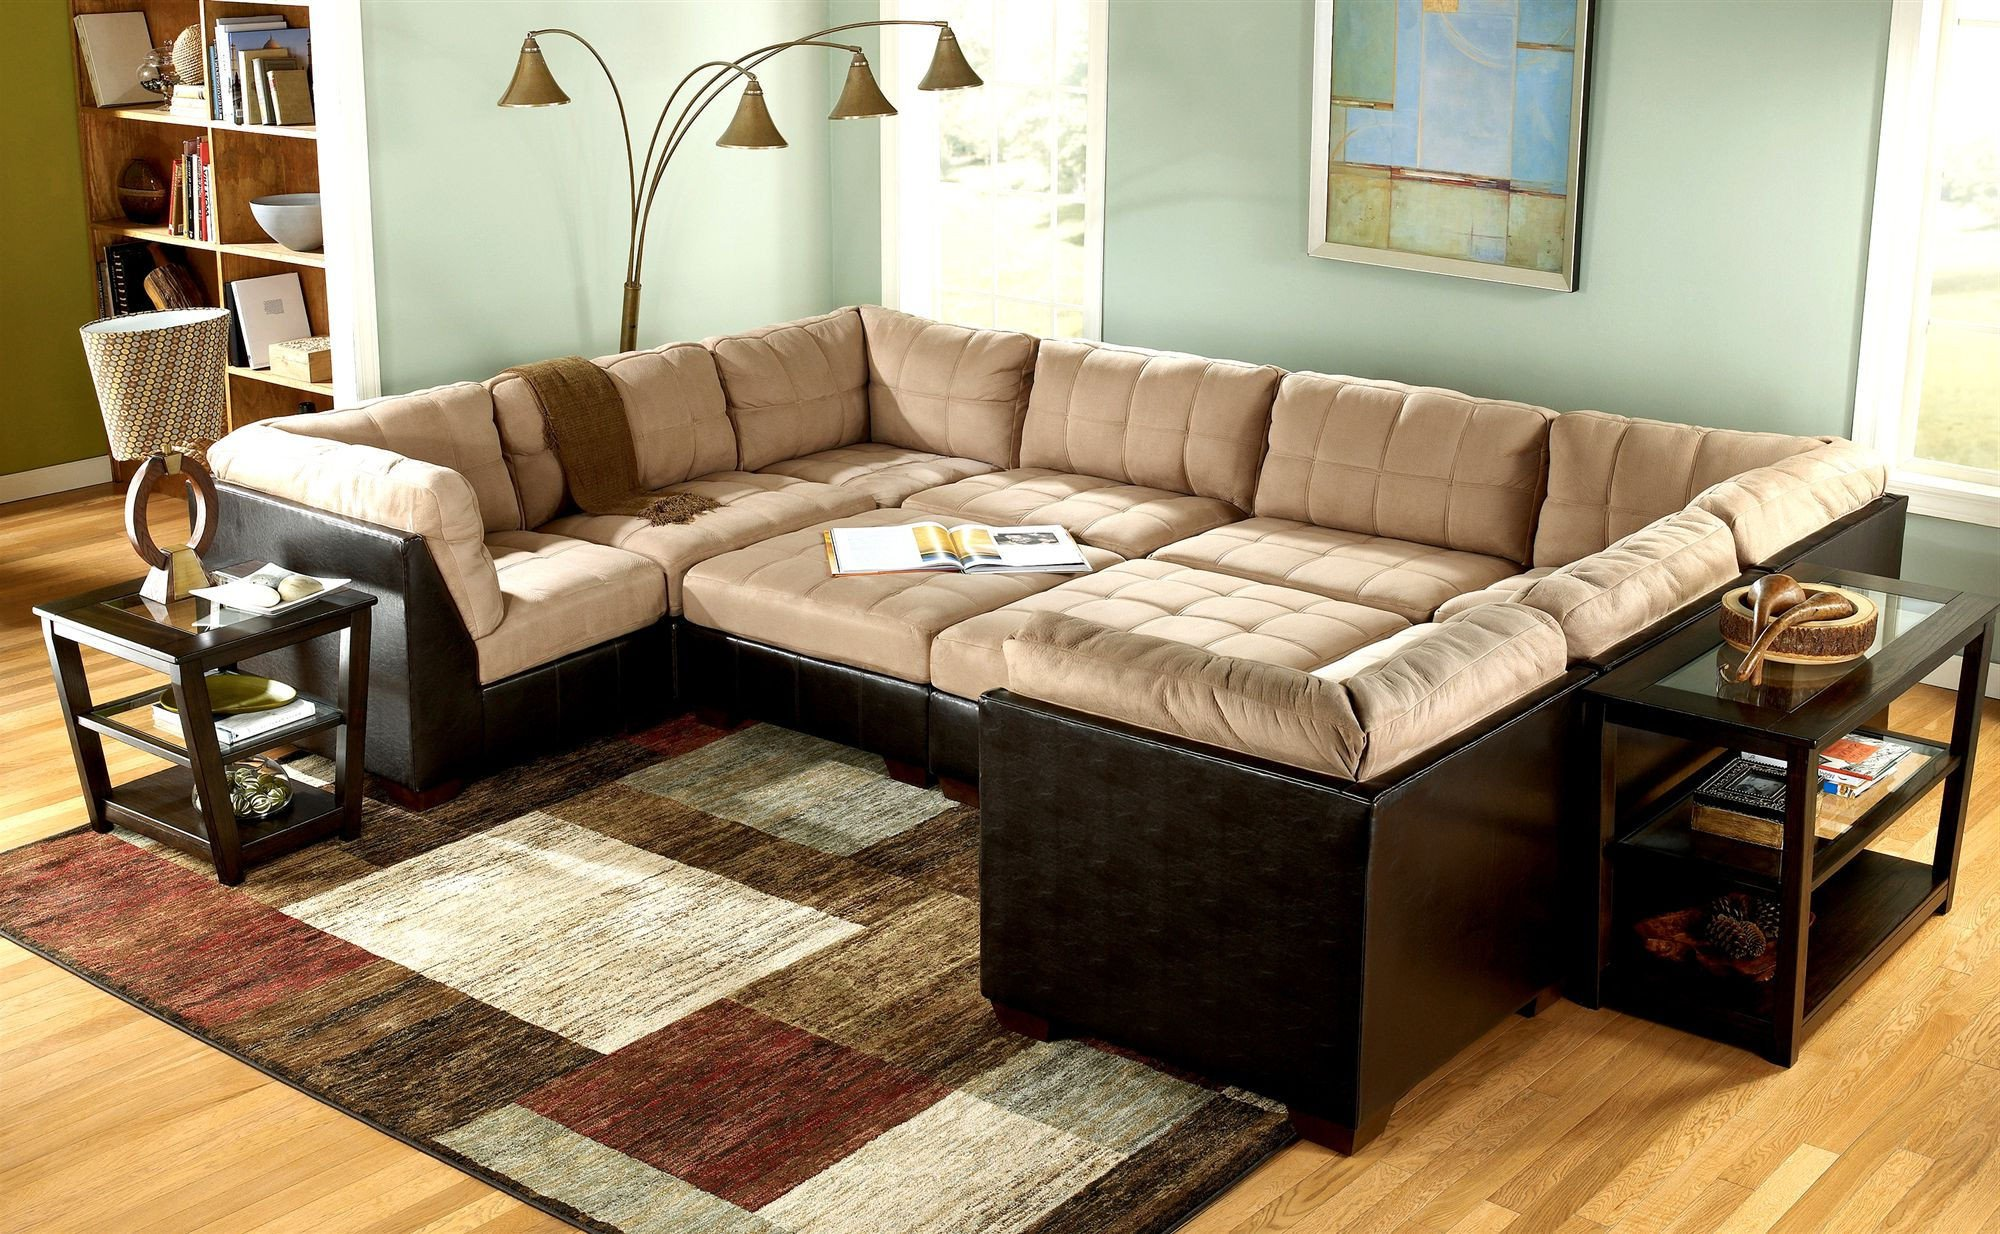 Small Living Room Ideas Sectionals Unique Living Room Ideas with Sectionals sofa for Small Living Room